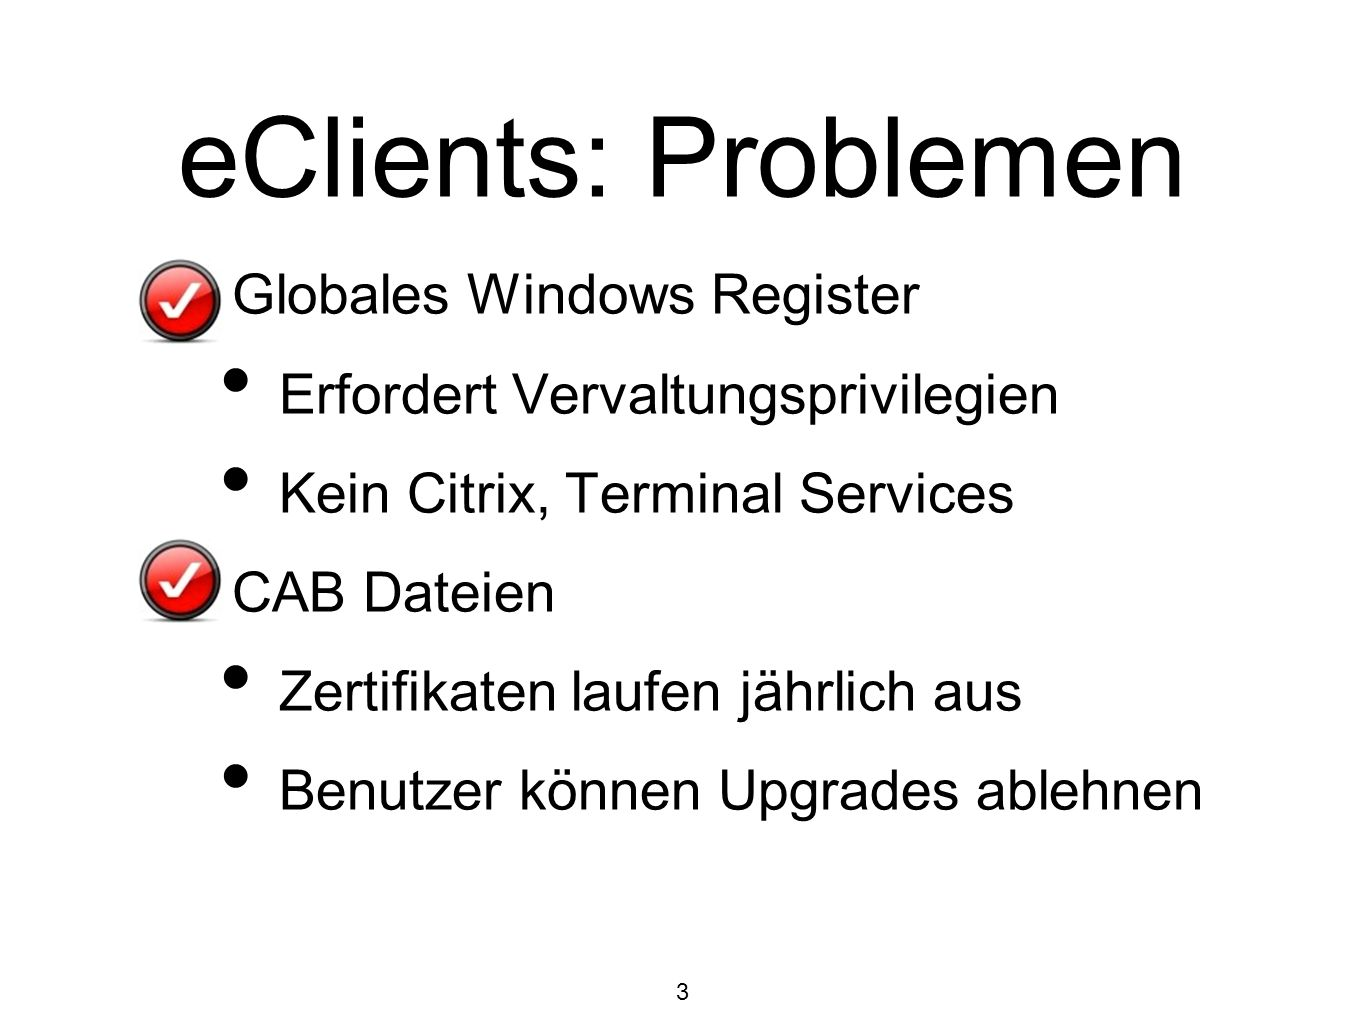 eClients: Problemen Globales Windows Register